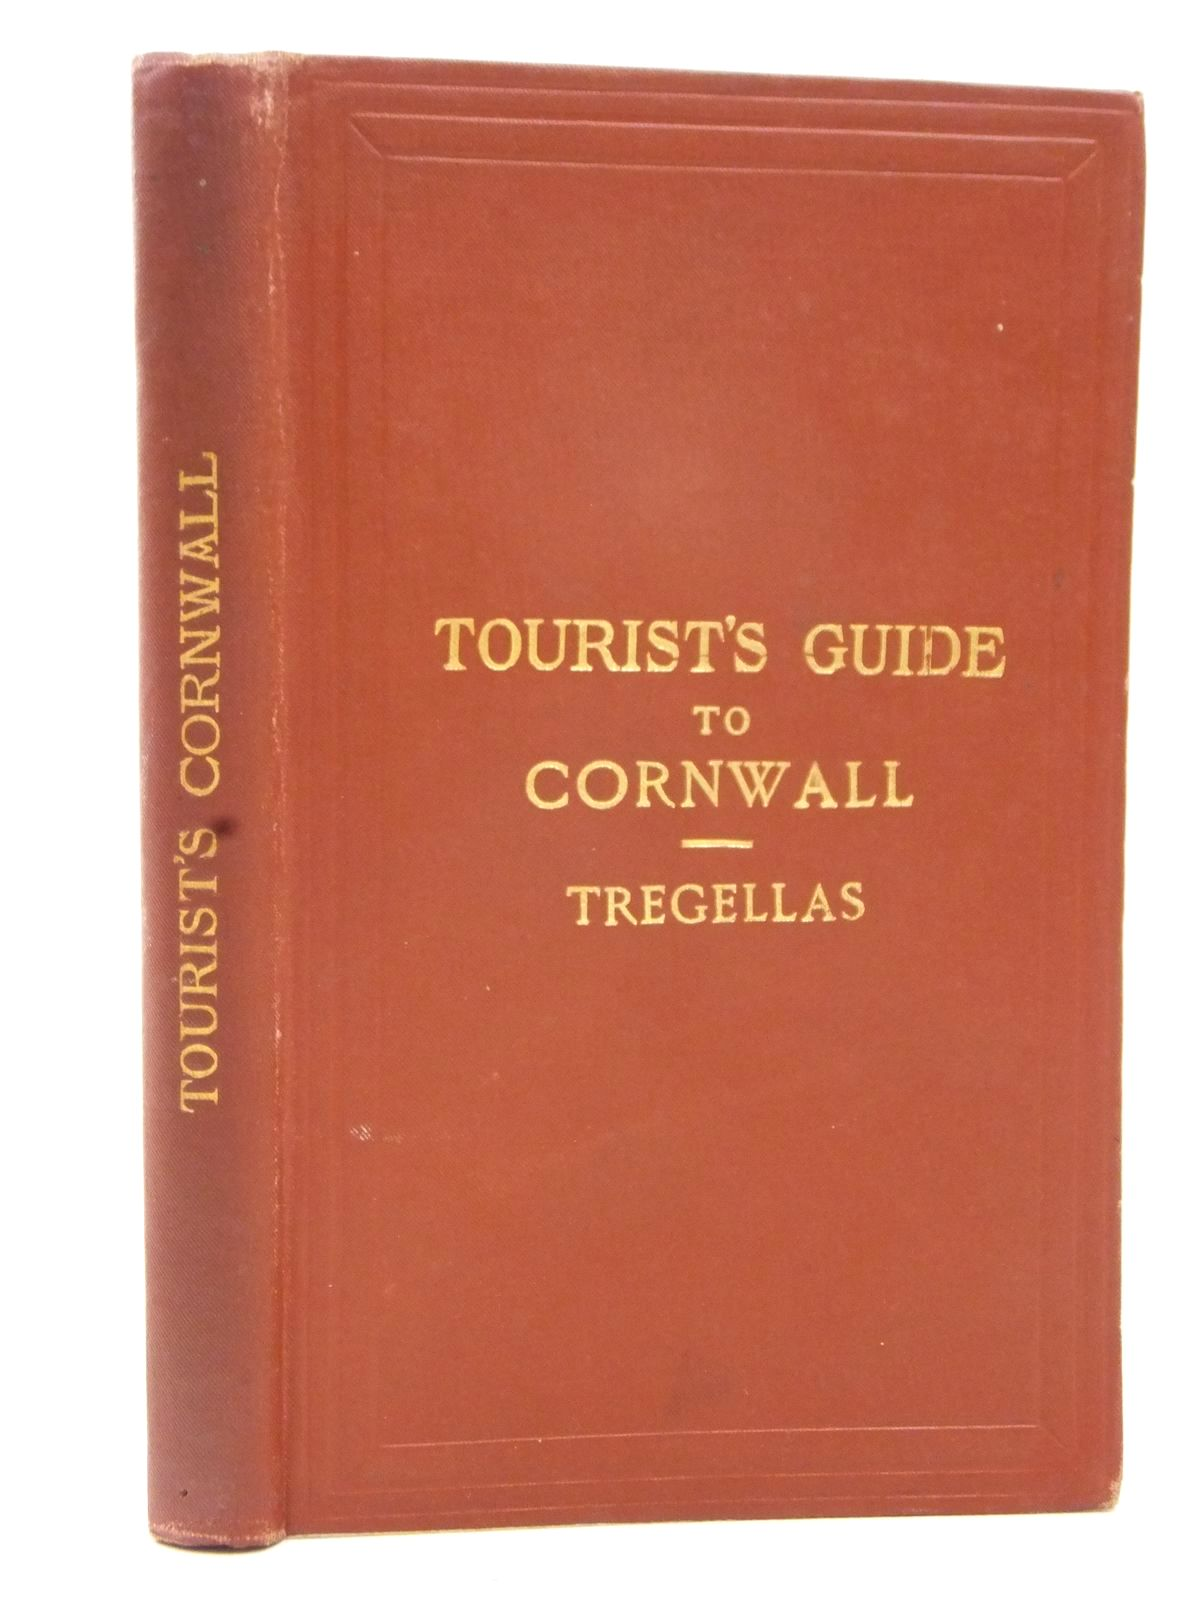 Photo of TOURISTS' GUIDE TO CORNWALL AND THE SCILLY ISLES written by Tregellas, Walter H. published by Edward Stanford (STOCK CODE: 1609452)  for sale by Stella & Rose's Books